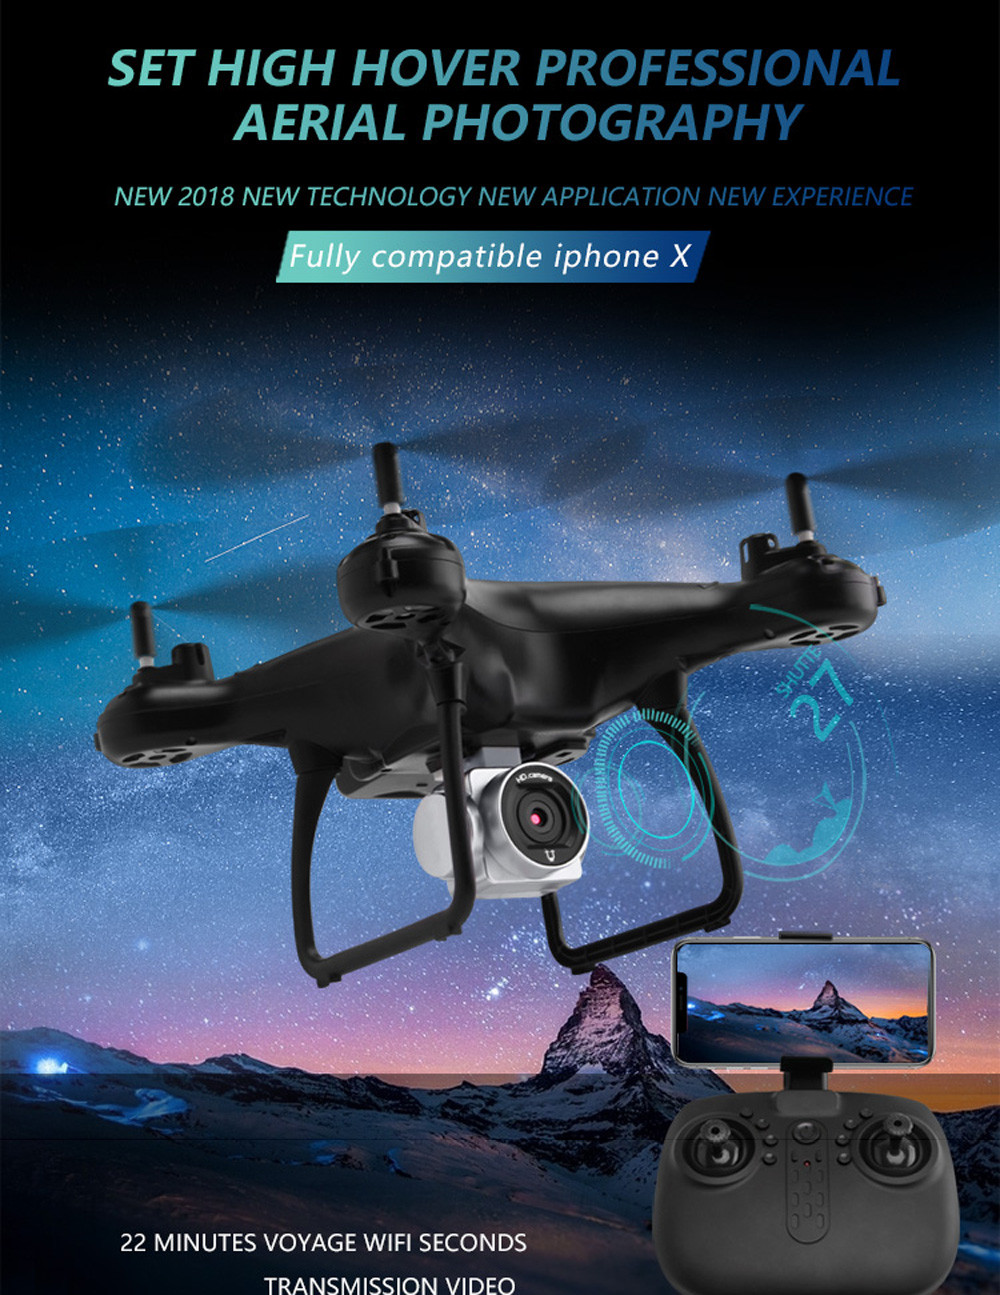 Utoghter Wide Angle Lens 720P HD Camera Quadcopter RC Drone WiFi FPV 1600Mah Battery Live RC Helicopter Hover drones com MAY 01 360 degree 170 wide angle lens sh5hd drones with camera hd quadcopter rc drone wifi fpv helicopter hover flip live video photo